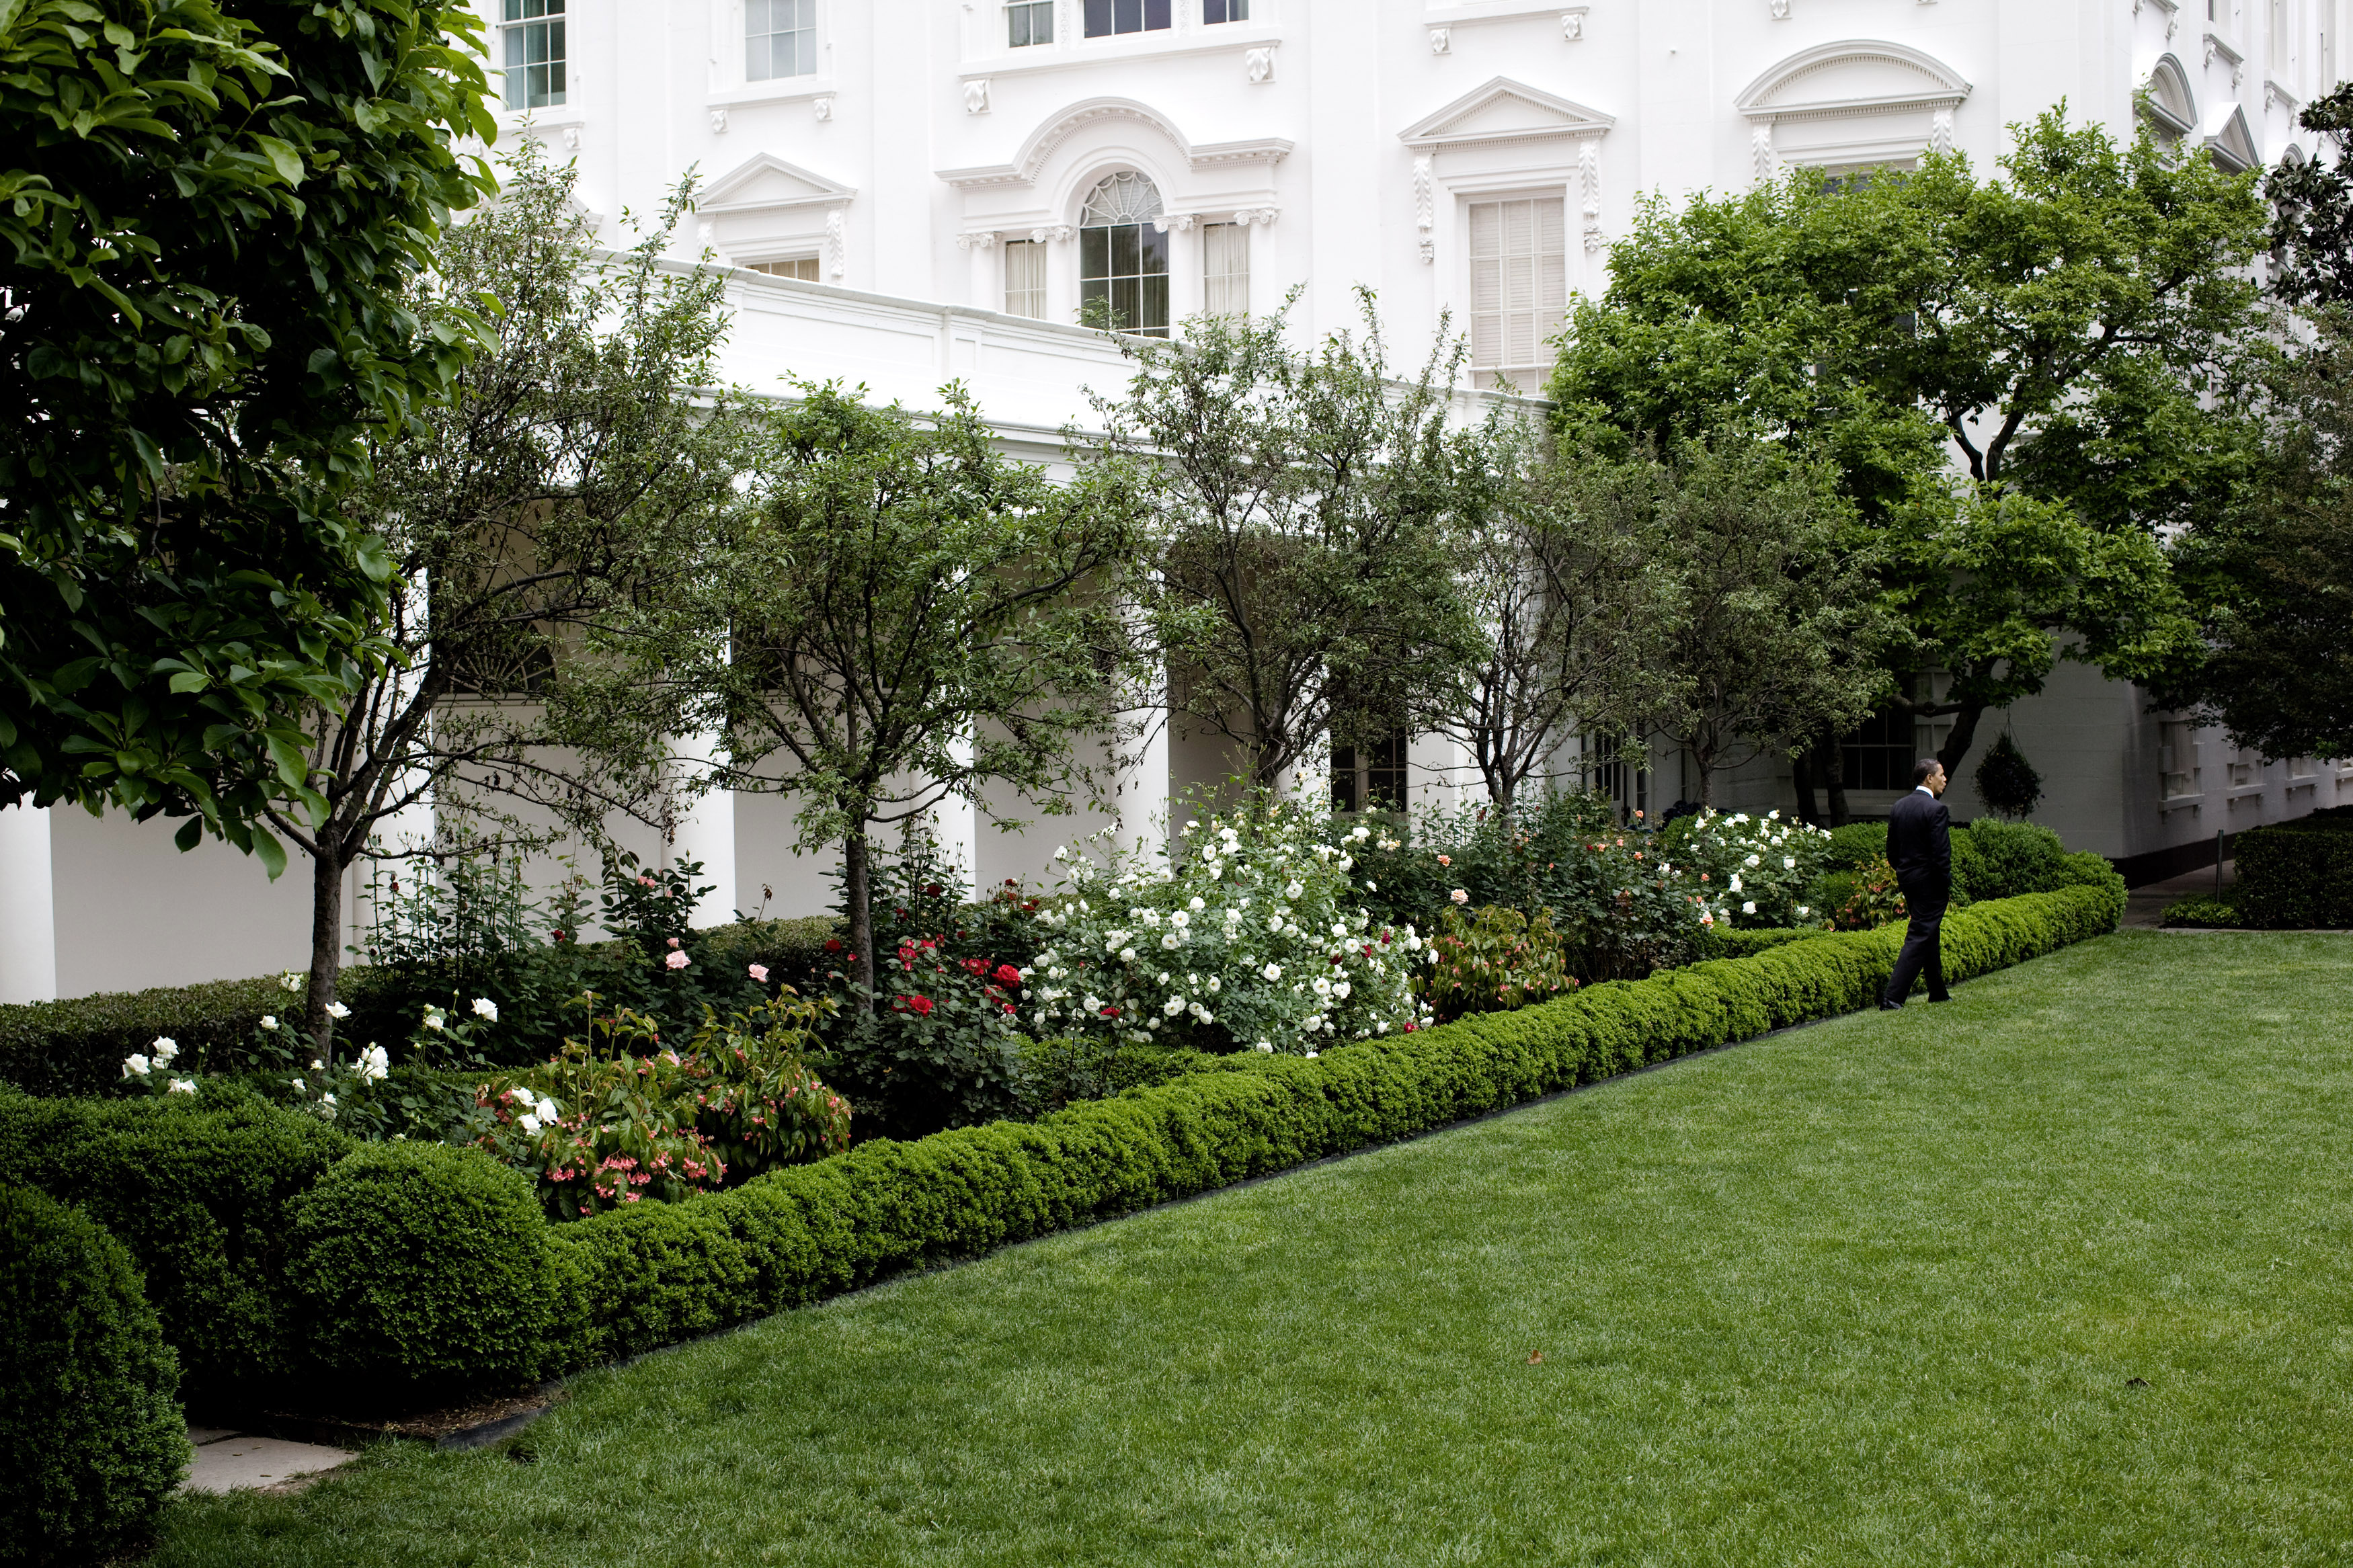 FileBarack Obama takes a stroll through the White House